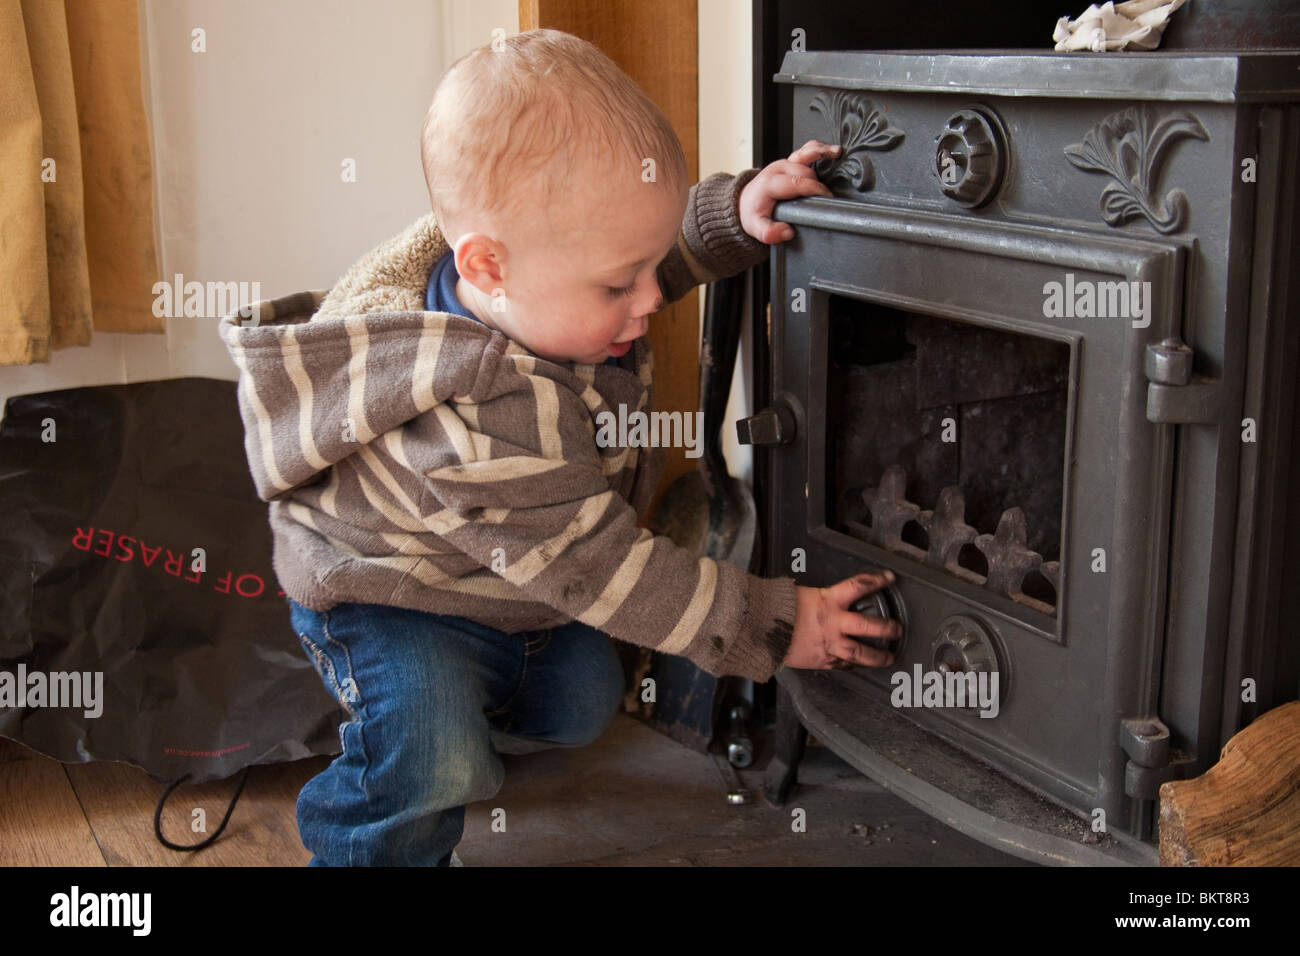 Baby boy ( 1 year old ) playing with a wood burning stove. Hampshire, England. - Stock Image